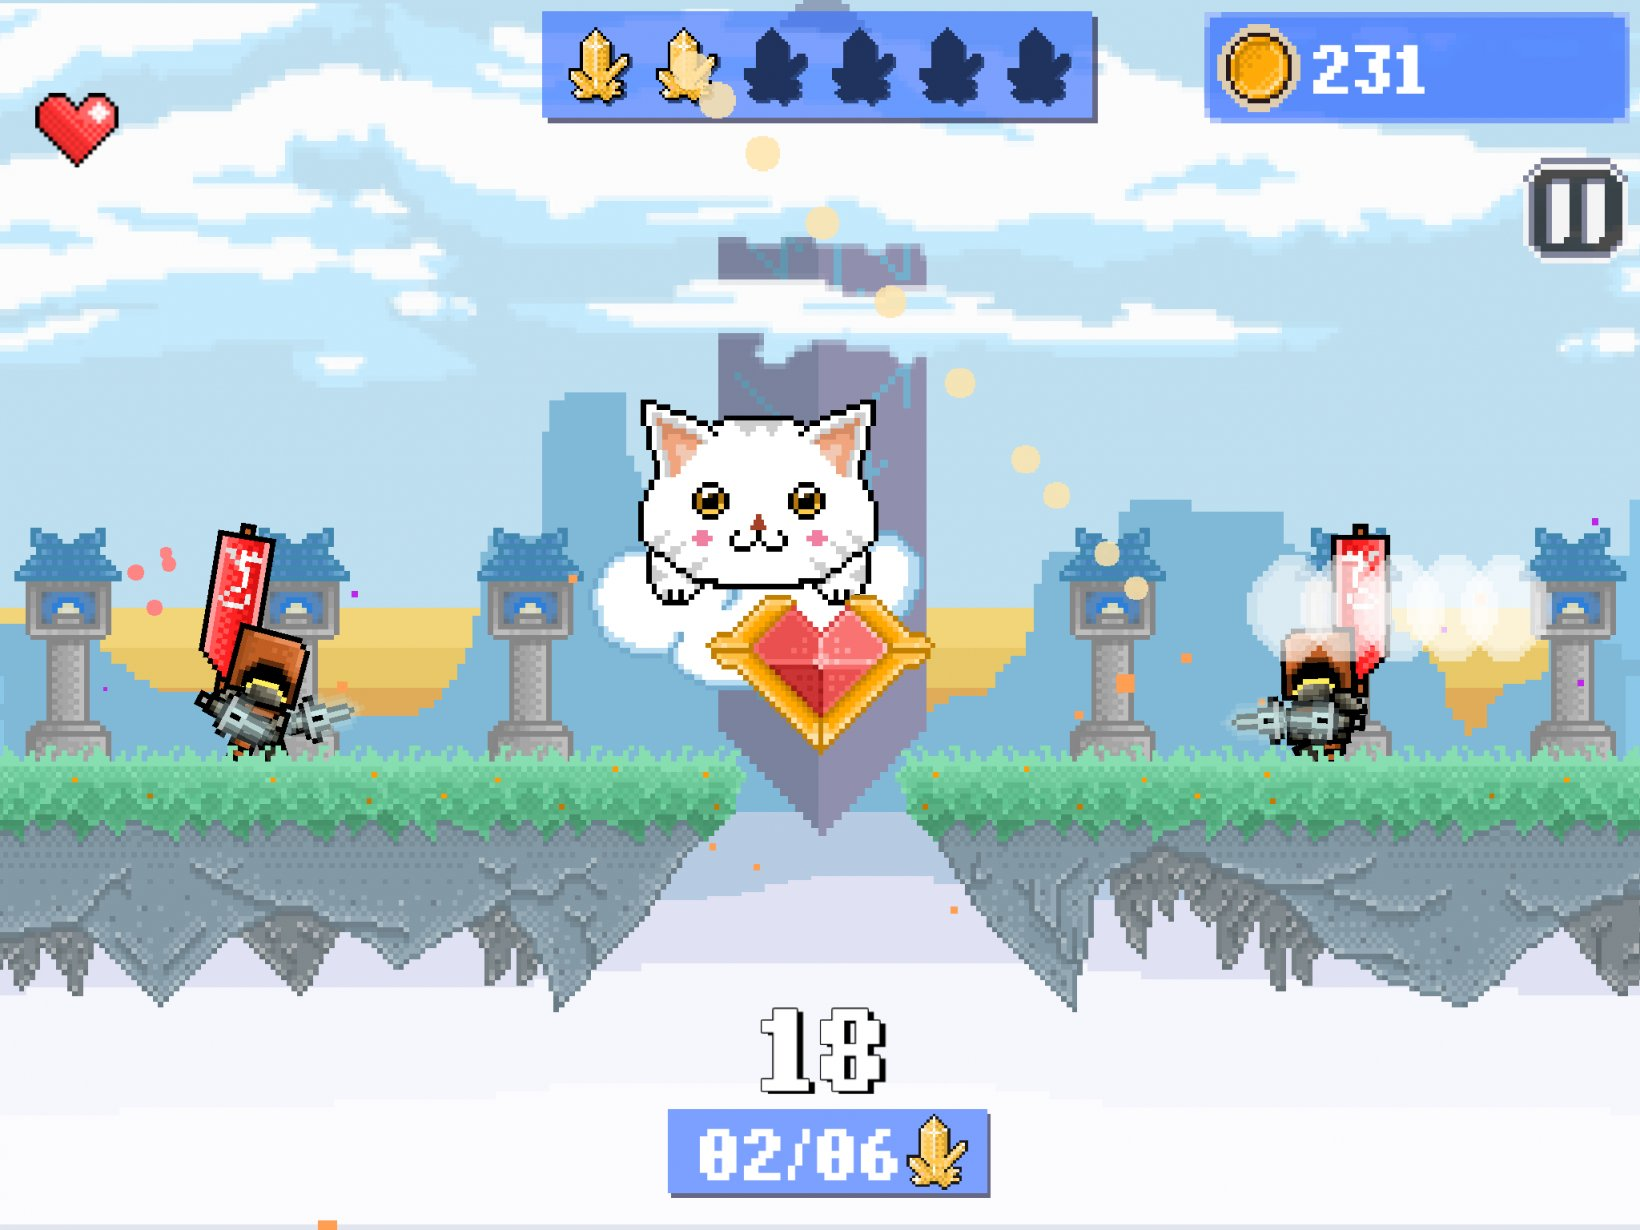 Laser Kitty Pow Pow review - A frantic arcade shooter best played in short bursts